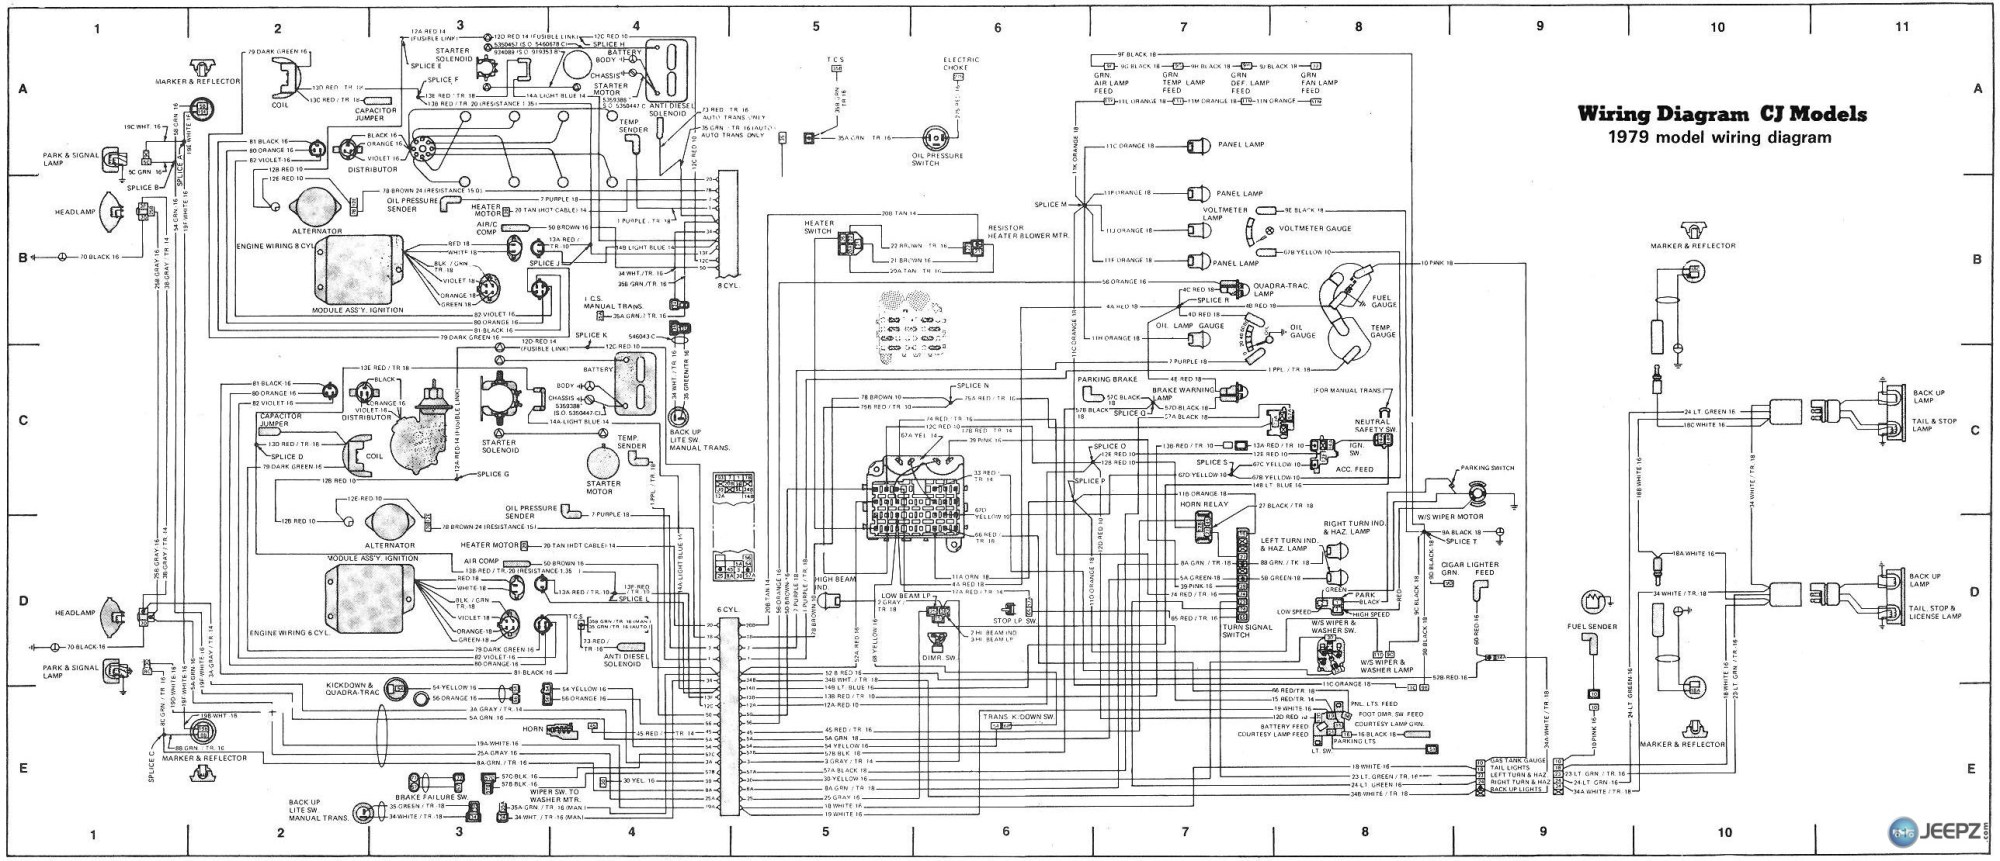 hight resolution of 1983 jeep cj7 gauge cluster wiring diagram detailed wiring diagram 84 jeep cj7 wiring diagram starter 84 jeep cj7 wiring diagram